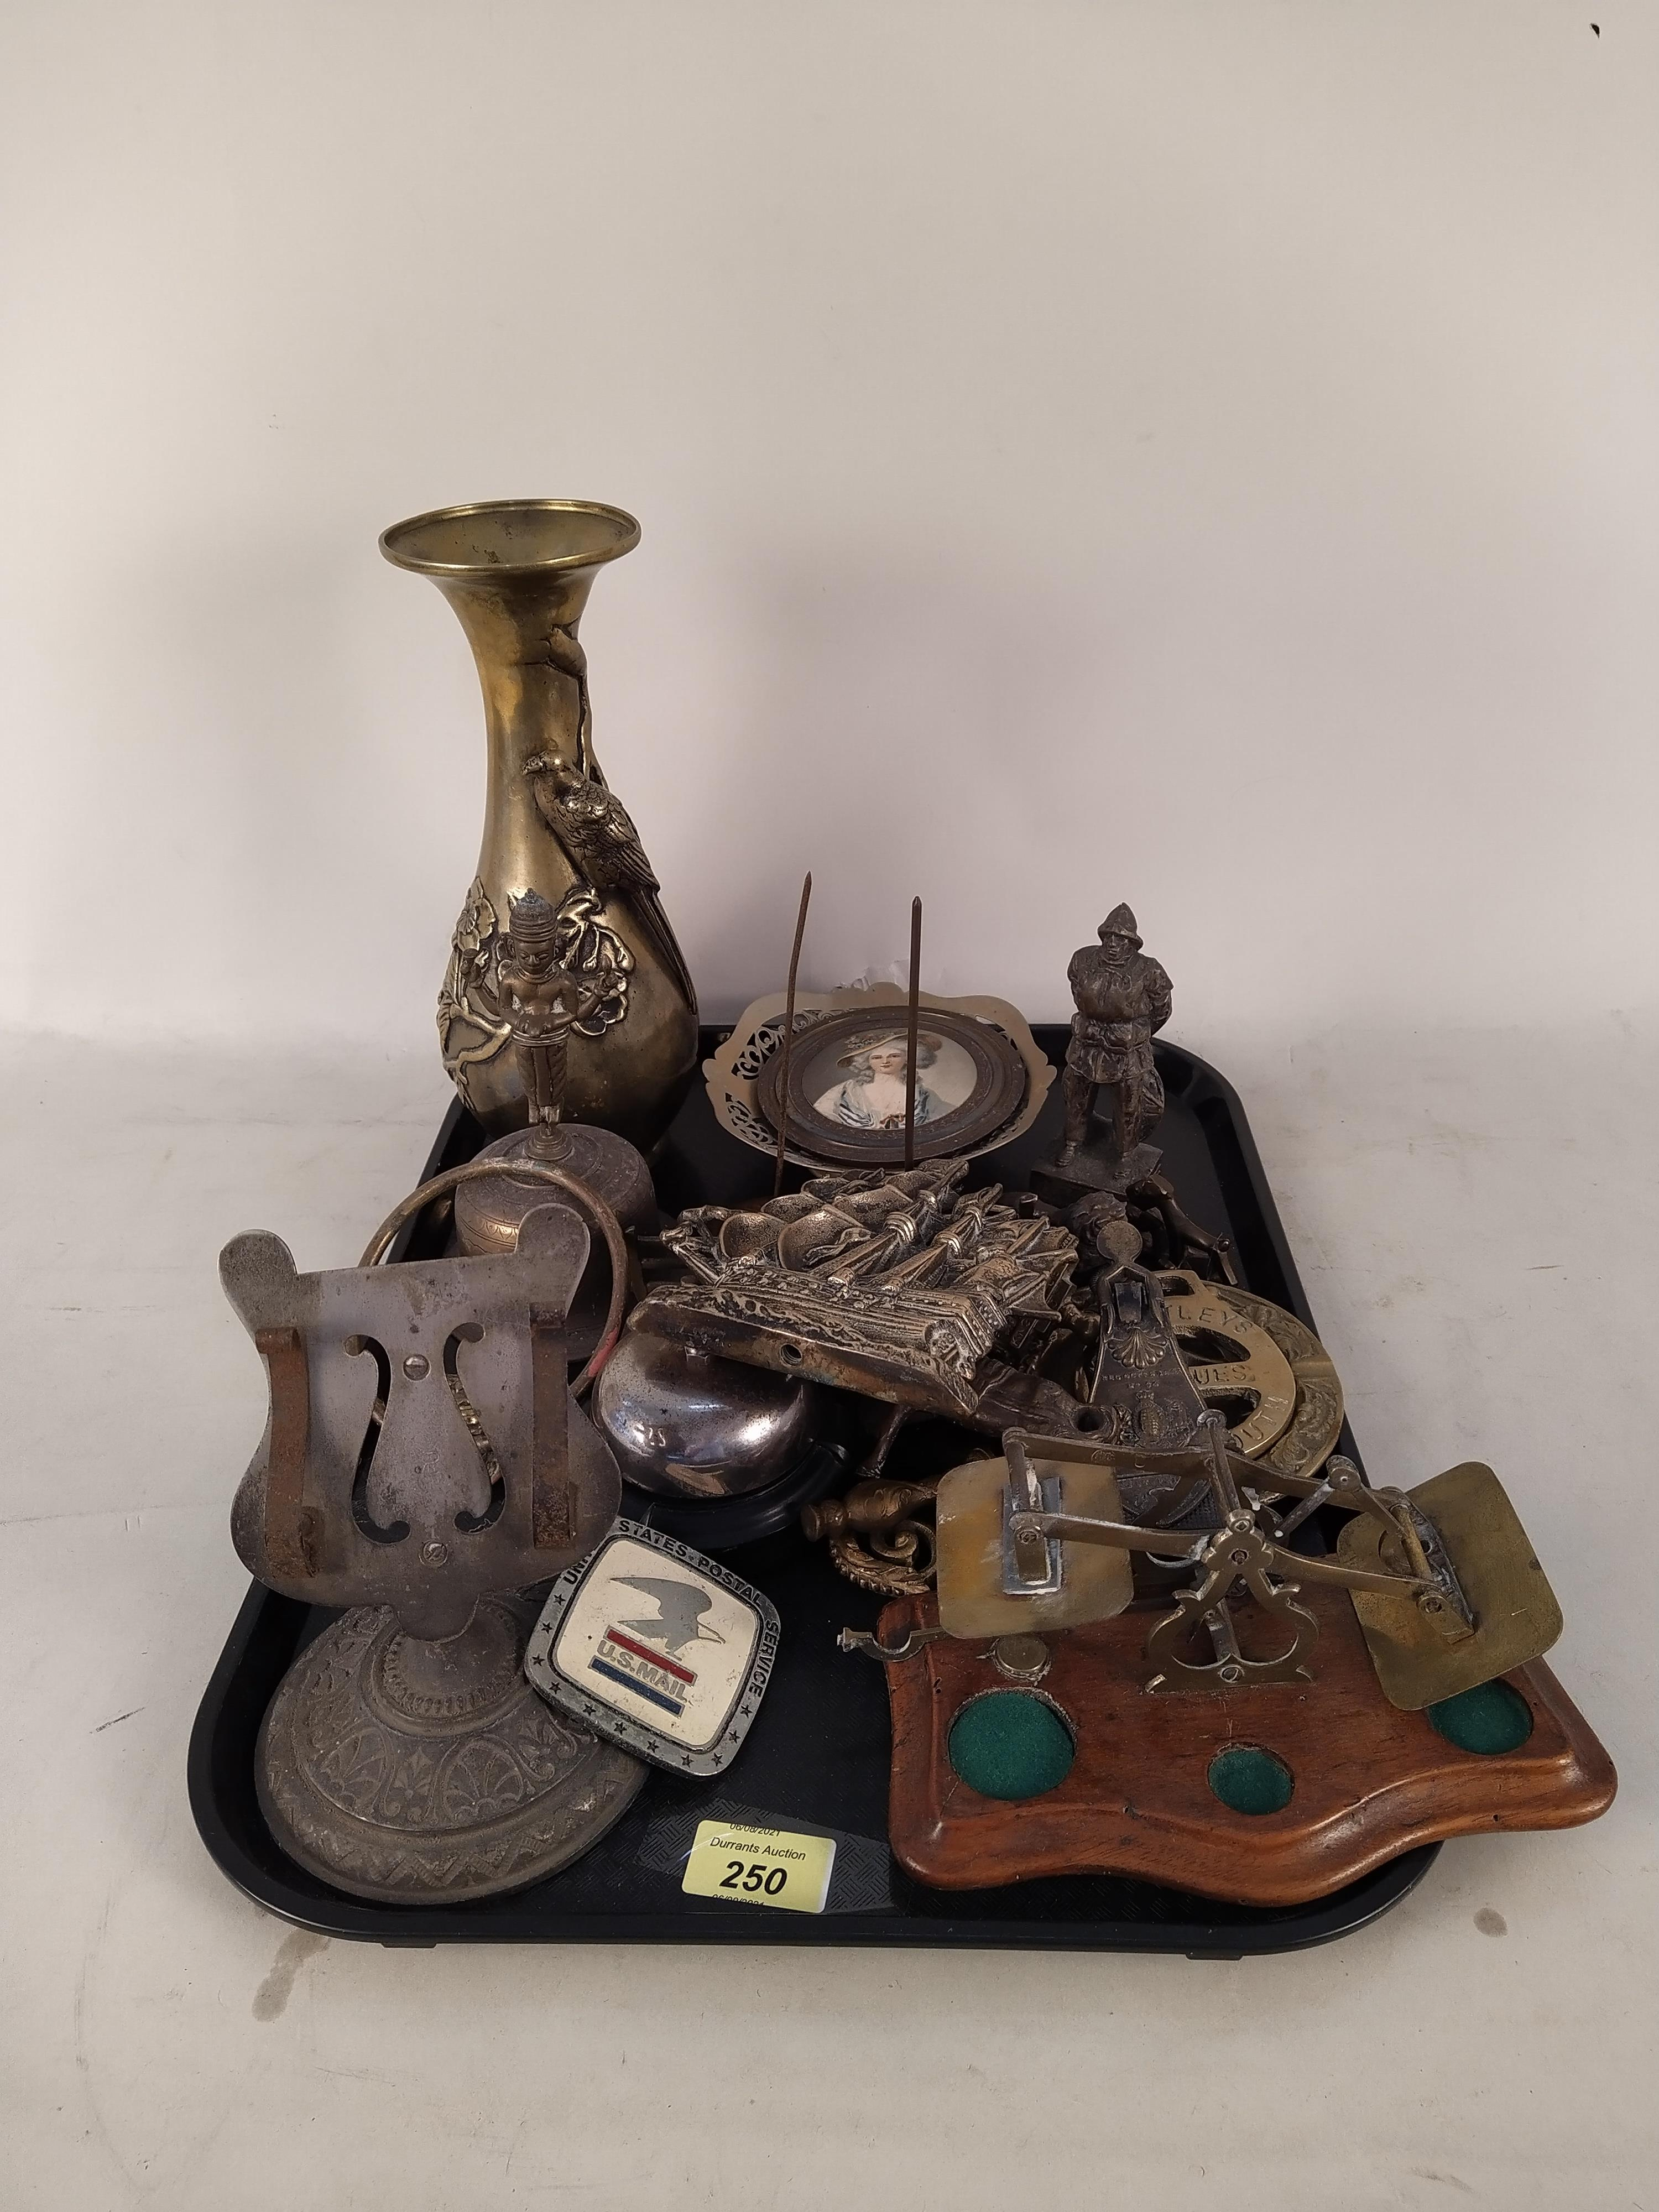 Mixed metalware including an antique paper clip, a heavy brass vase, postal scales (as found), - Image 3 of 3